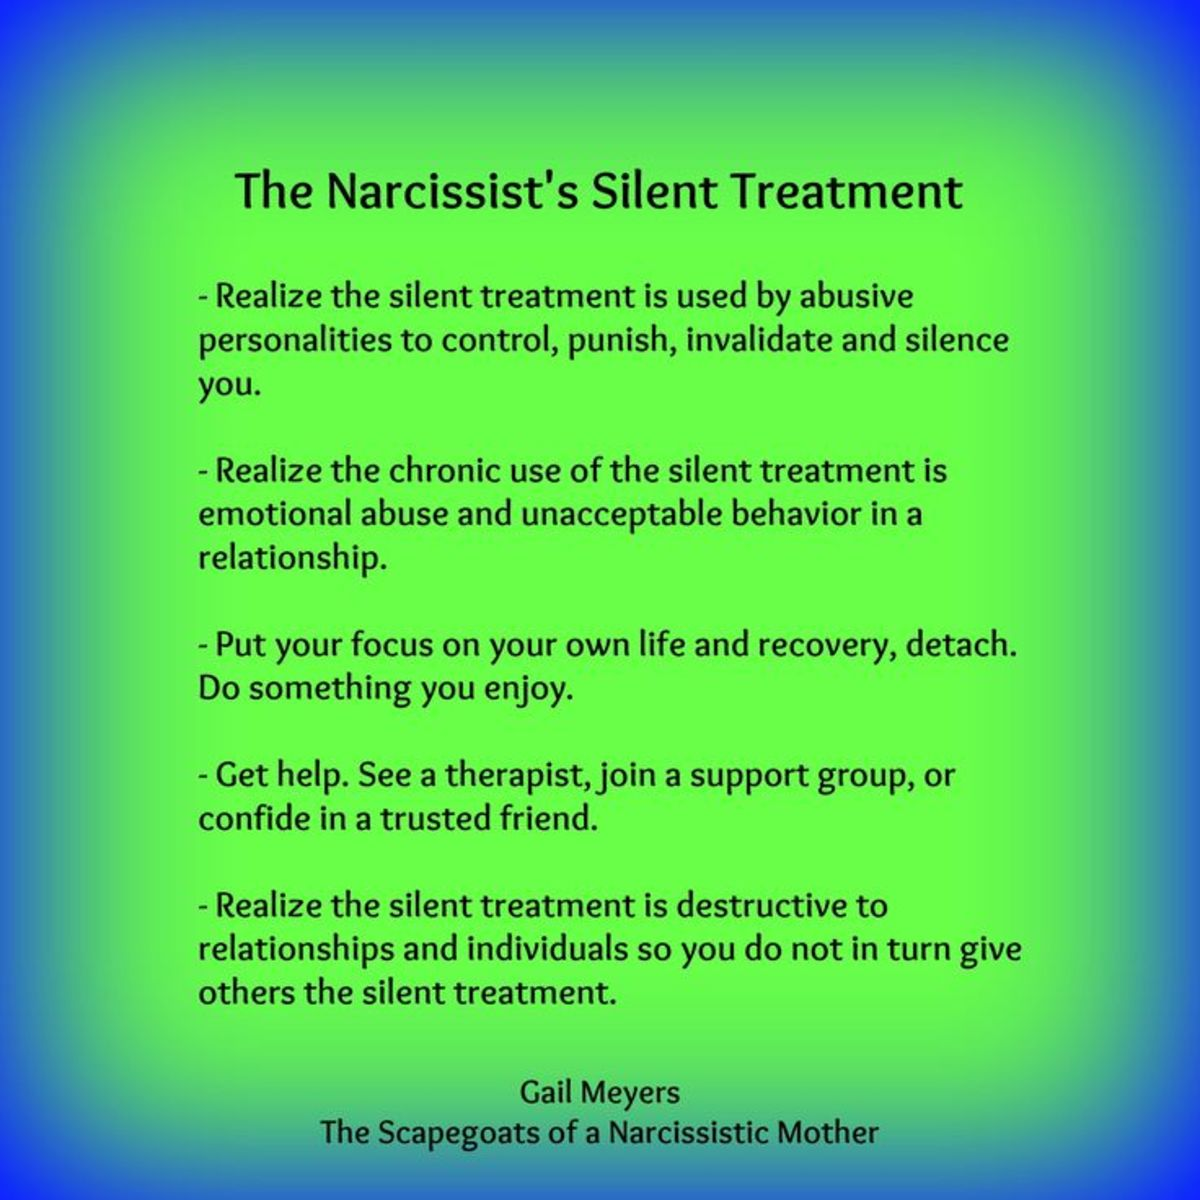 Psychological effects of the silent treatment